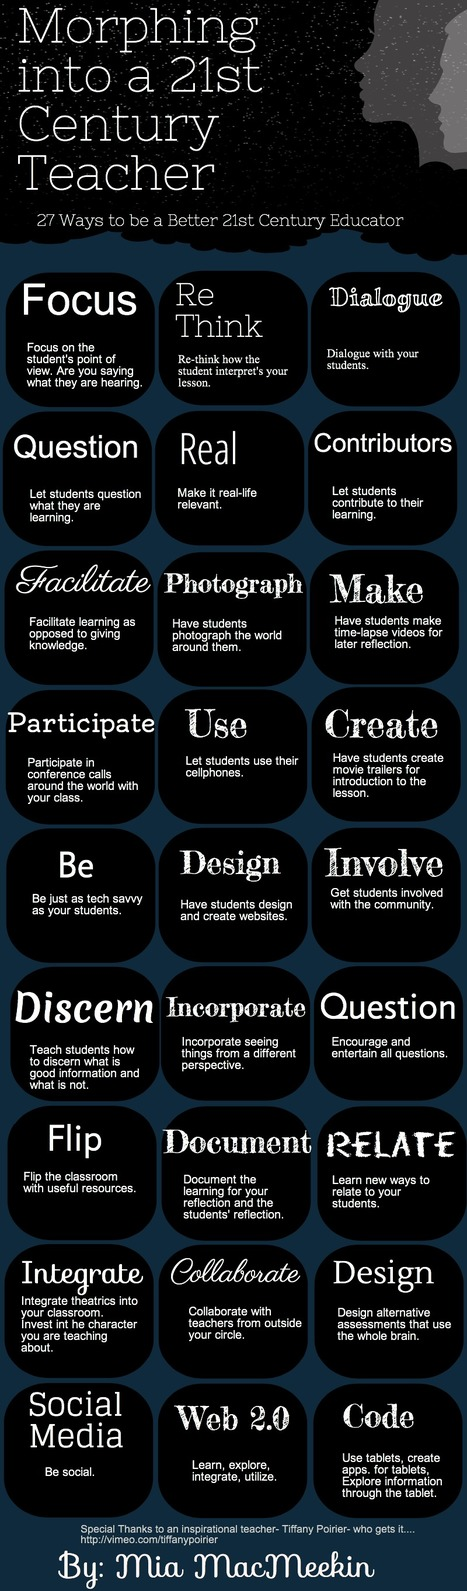 27 Ways To Be A 21st Century Teacher - Infographic | Stewart's Technology Tools | Scoop.it